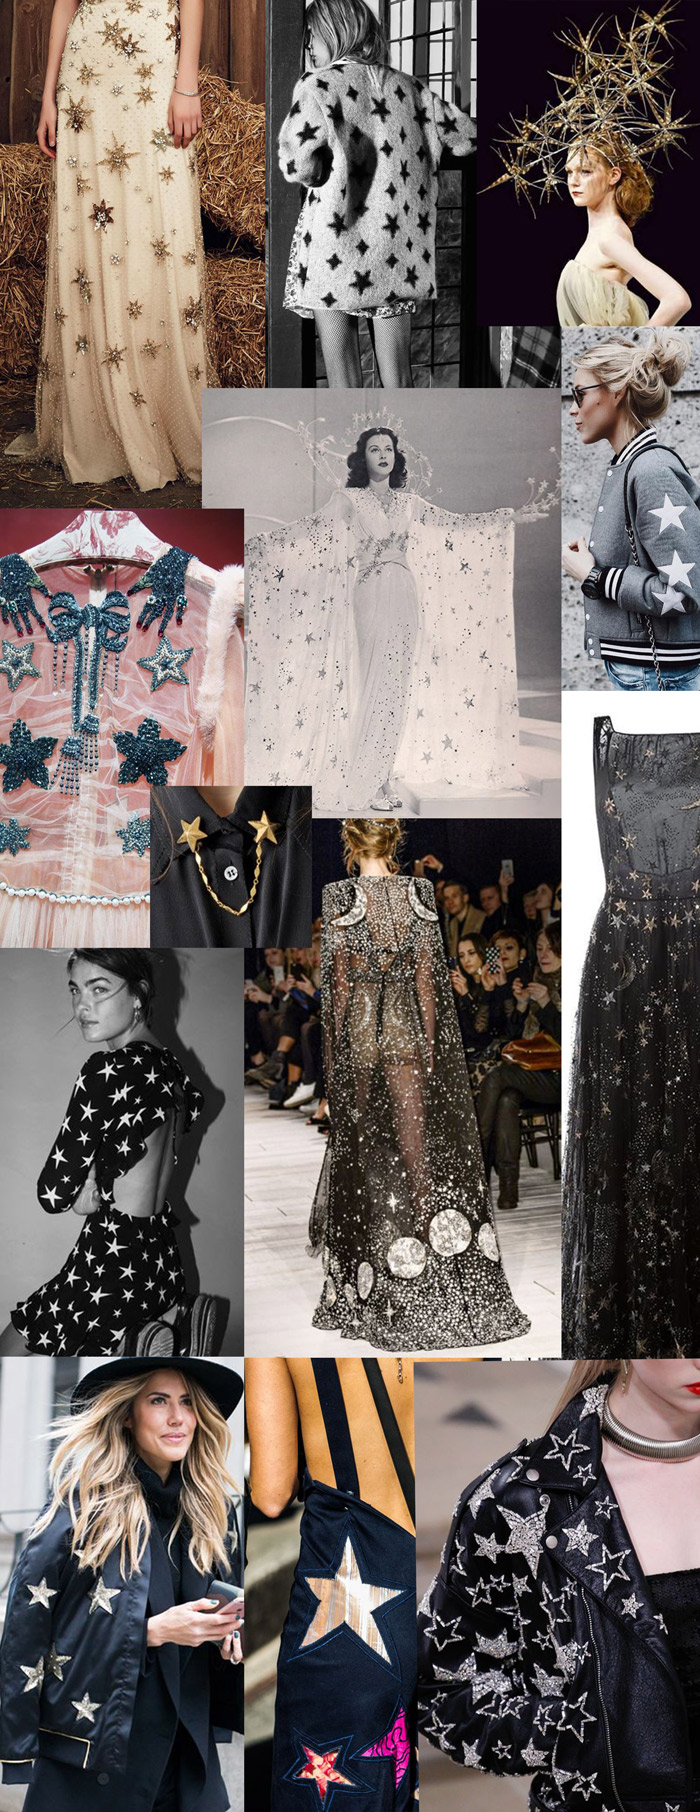 From top left: Jenny Packham, Saint Laurent, Richard Nylon, Street style bomber, Valentino, Saint Laurent, Sydney Fashion Week, Street style, Realisation dress, Gucci, Hedy Lamar in Zeigfield Girl, McQueen